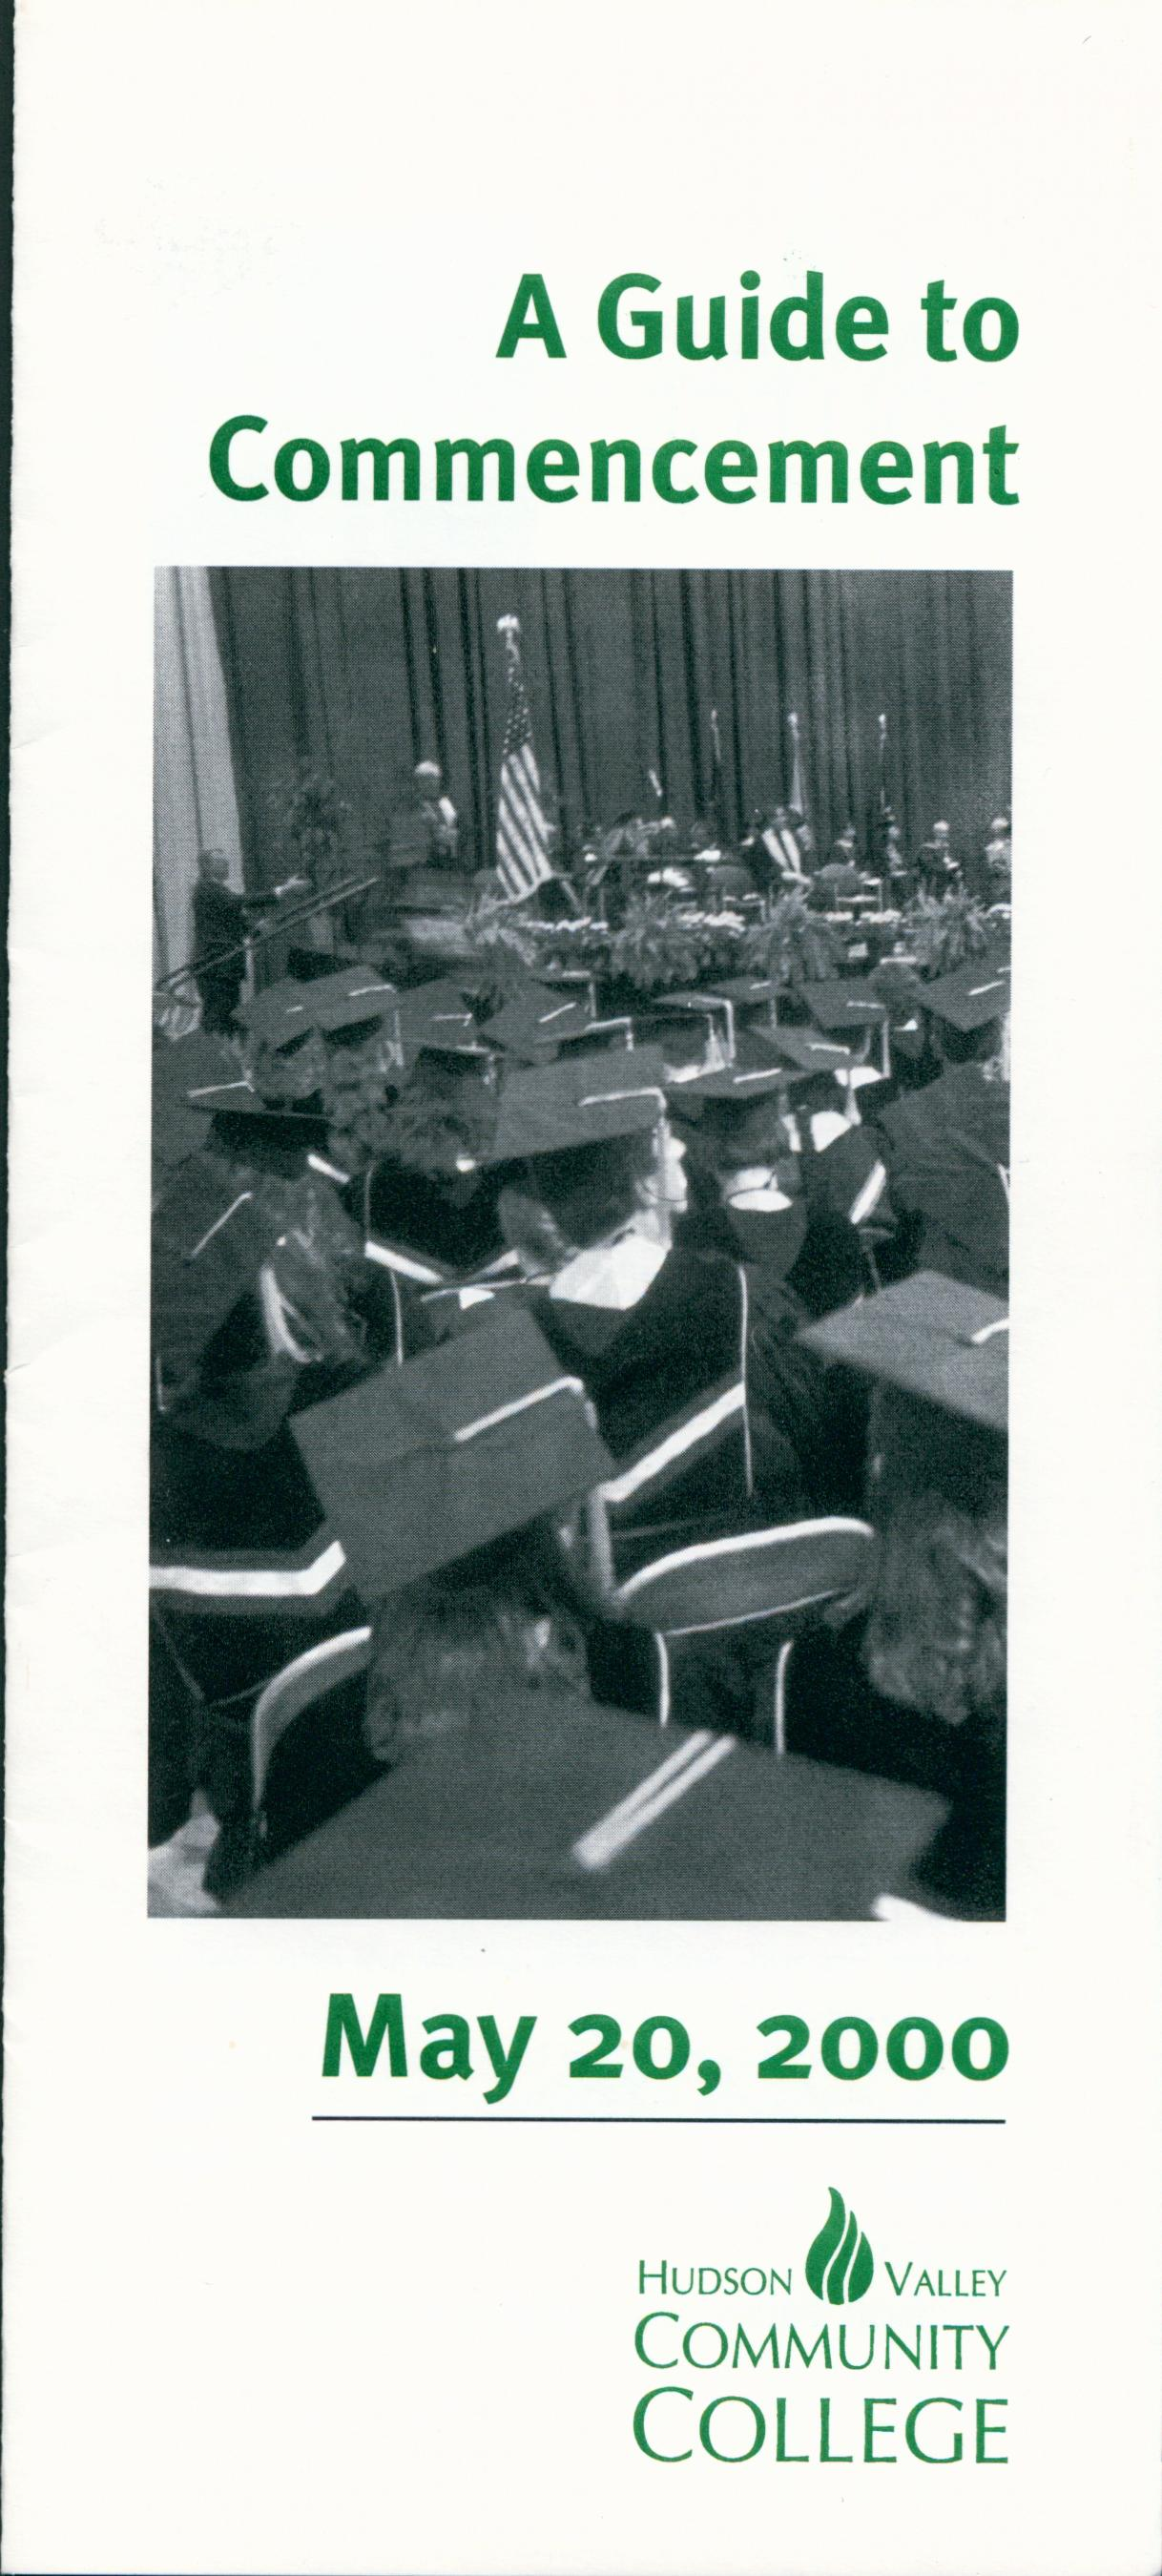 A Guide to Commencement, May 20, 2000